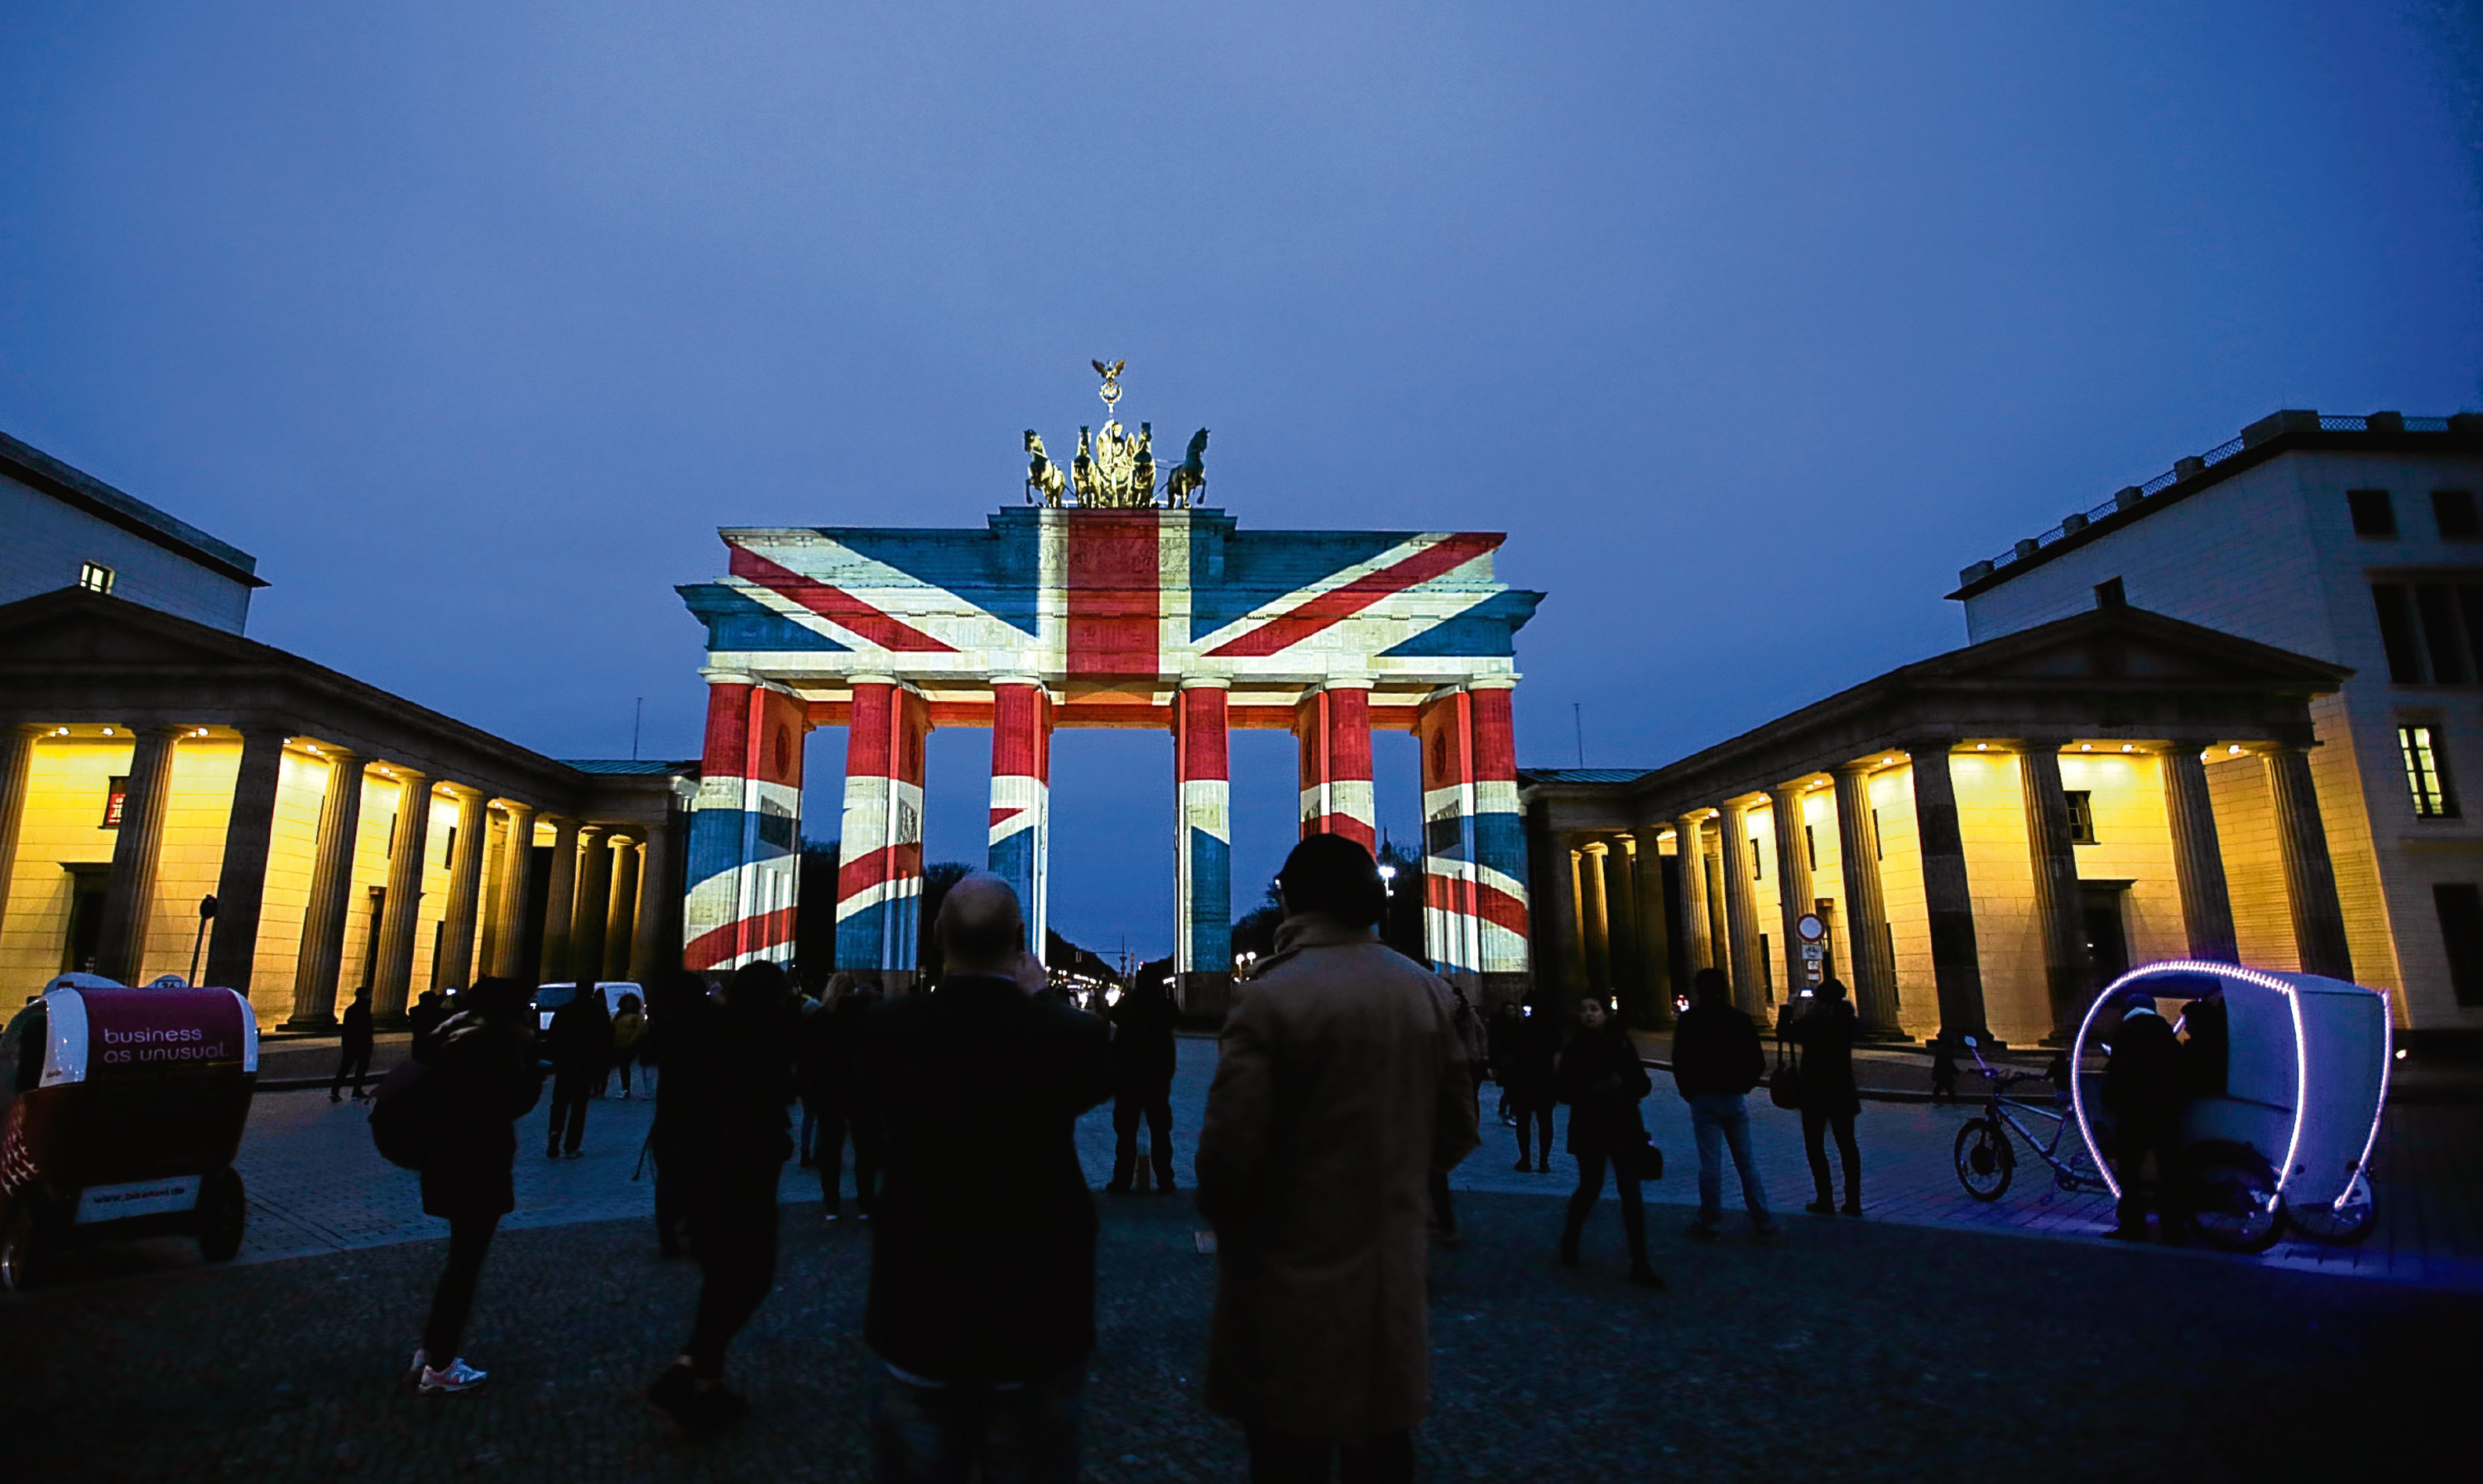 Berlin's Brandenburg Gate is illuminated in tribute to the Manchester victims.